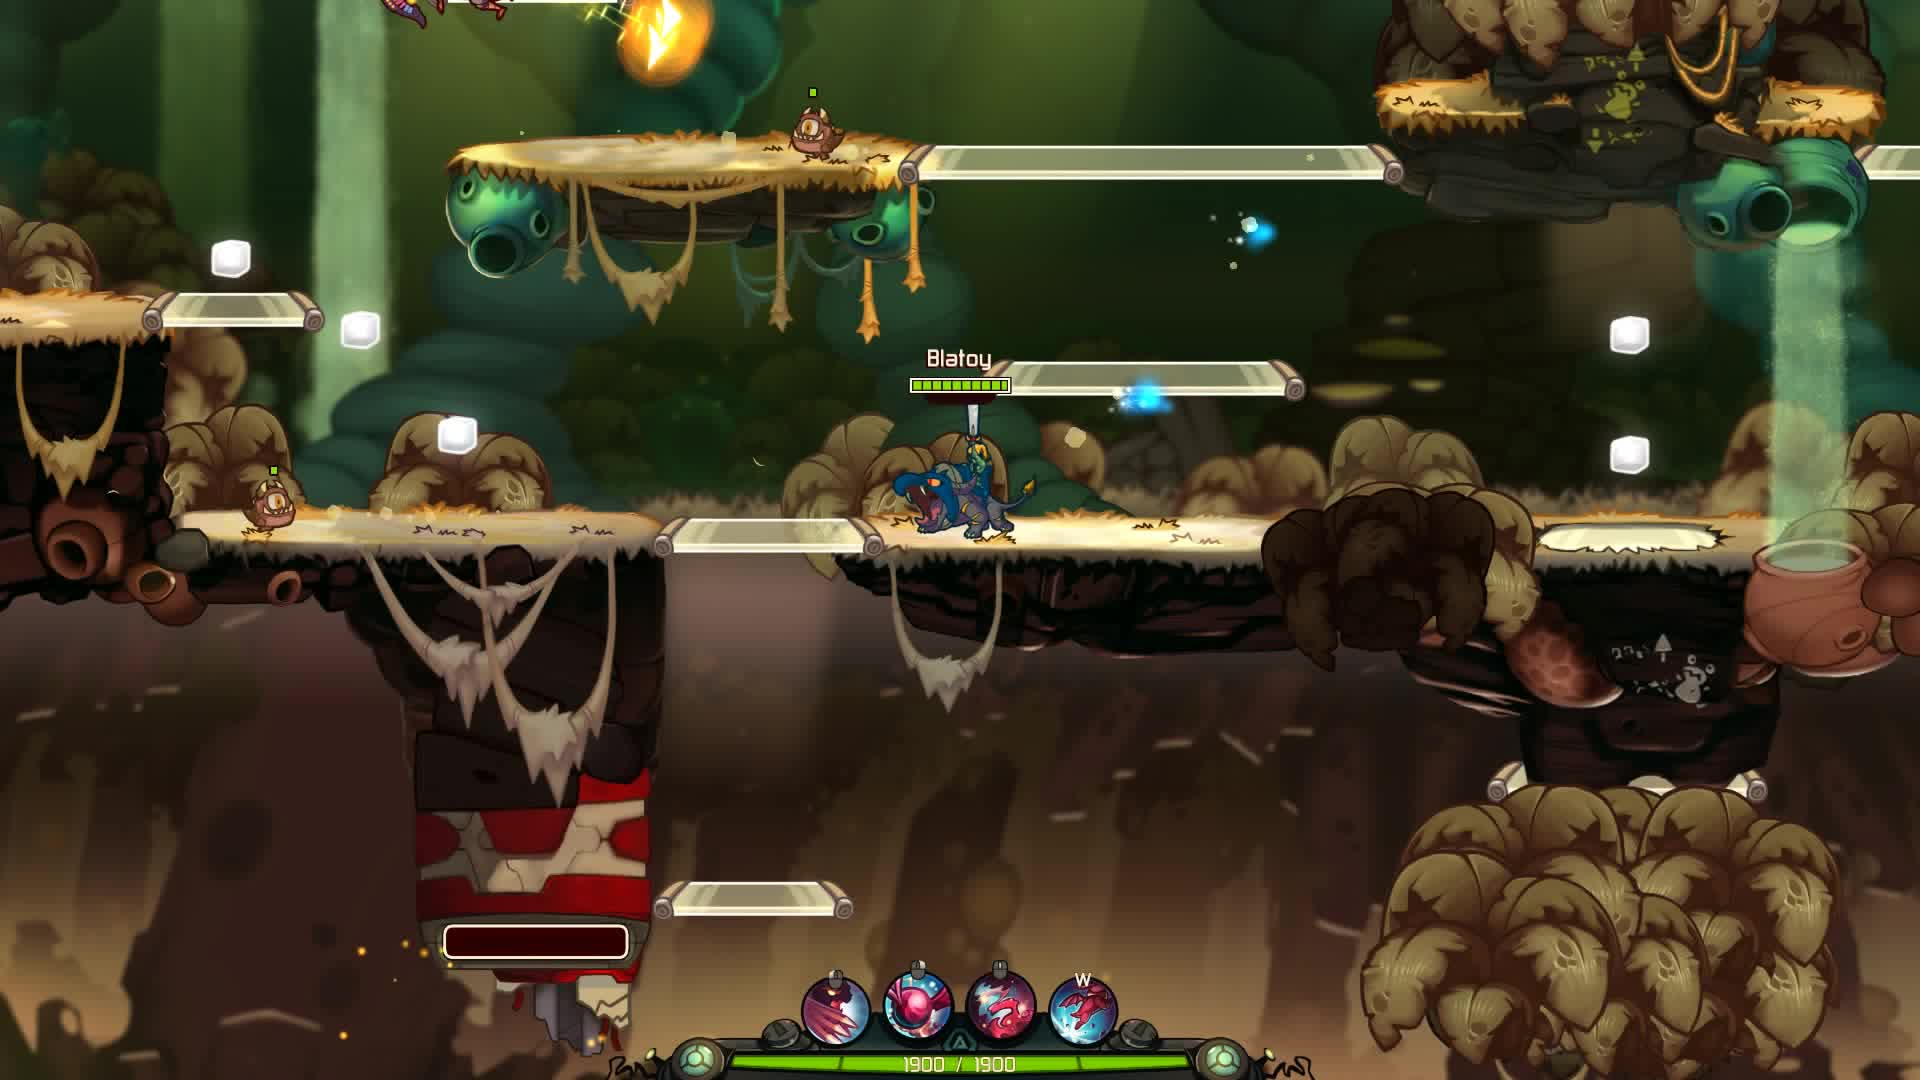 awesomenauts, Games can get pretty intense GIFs